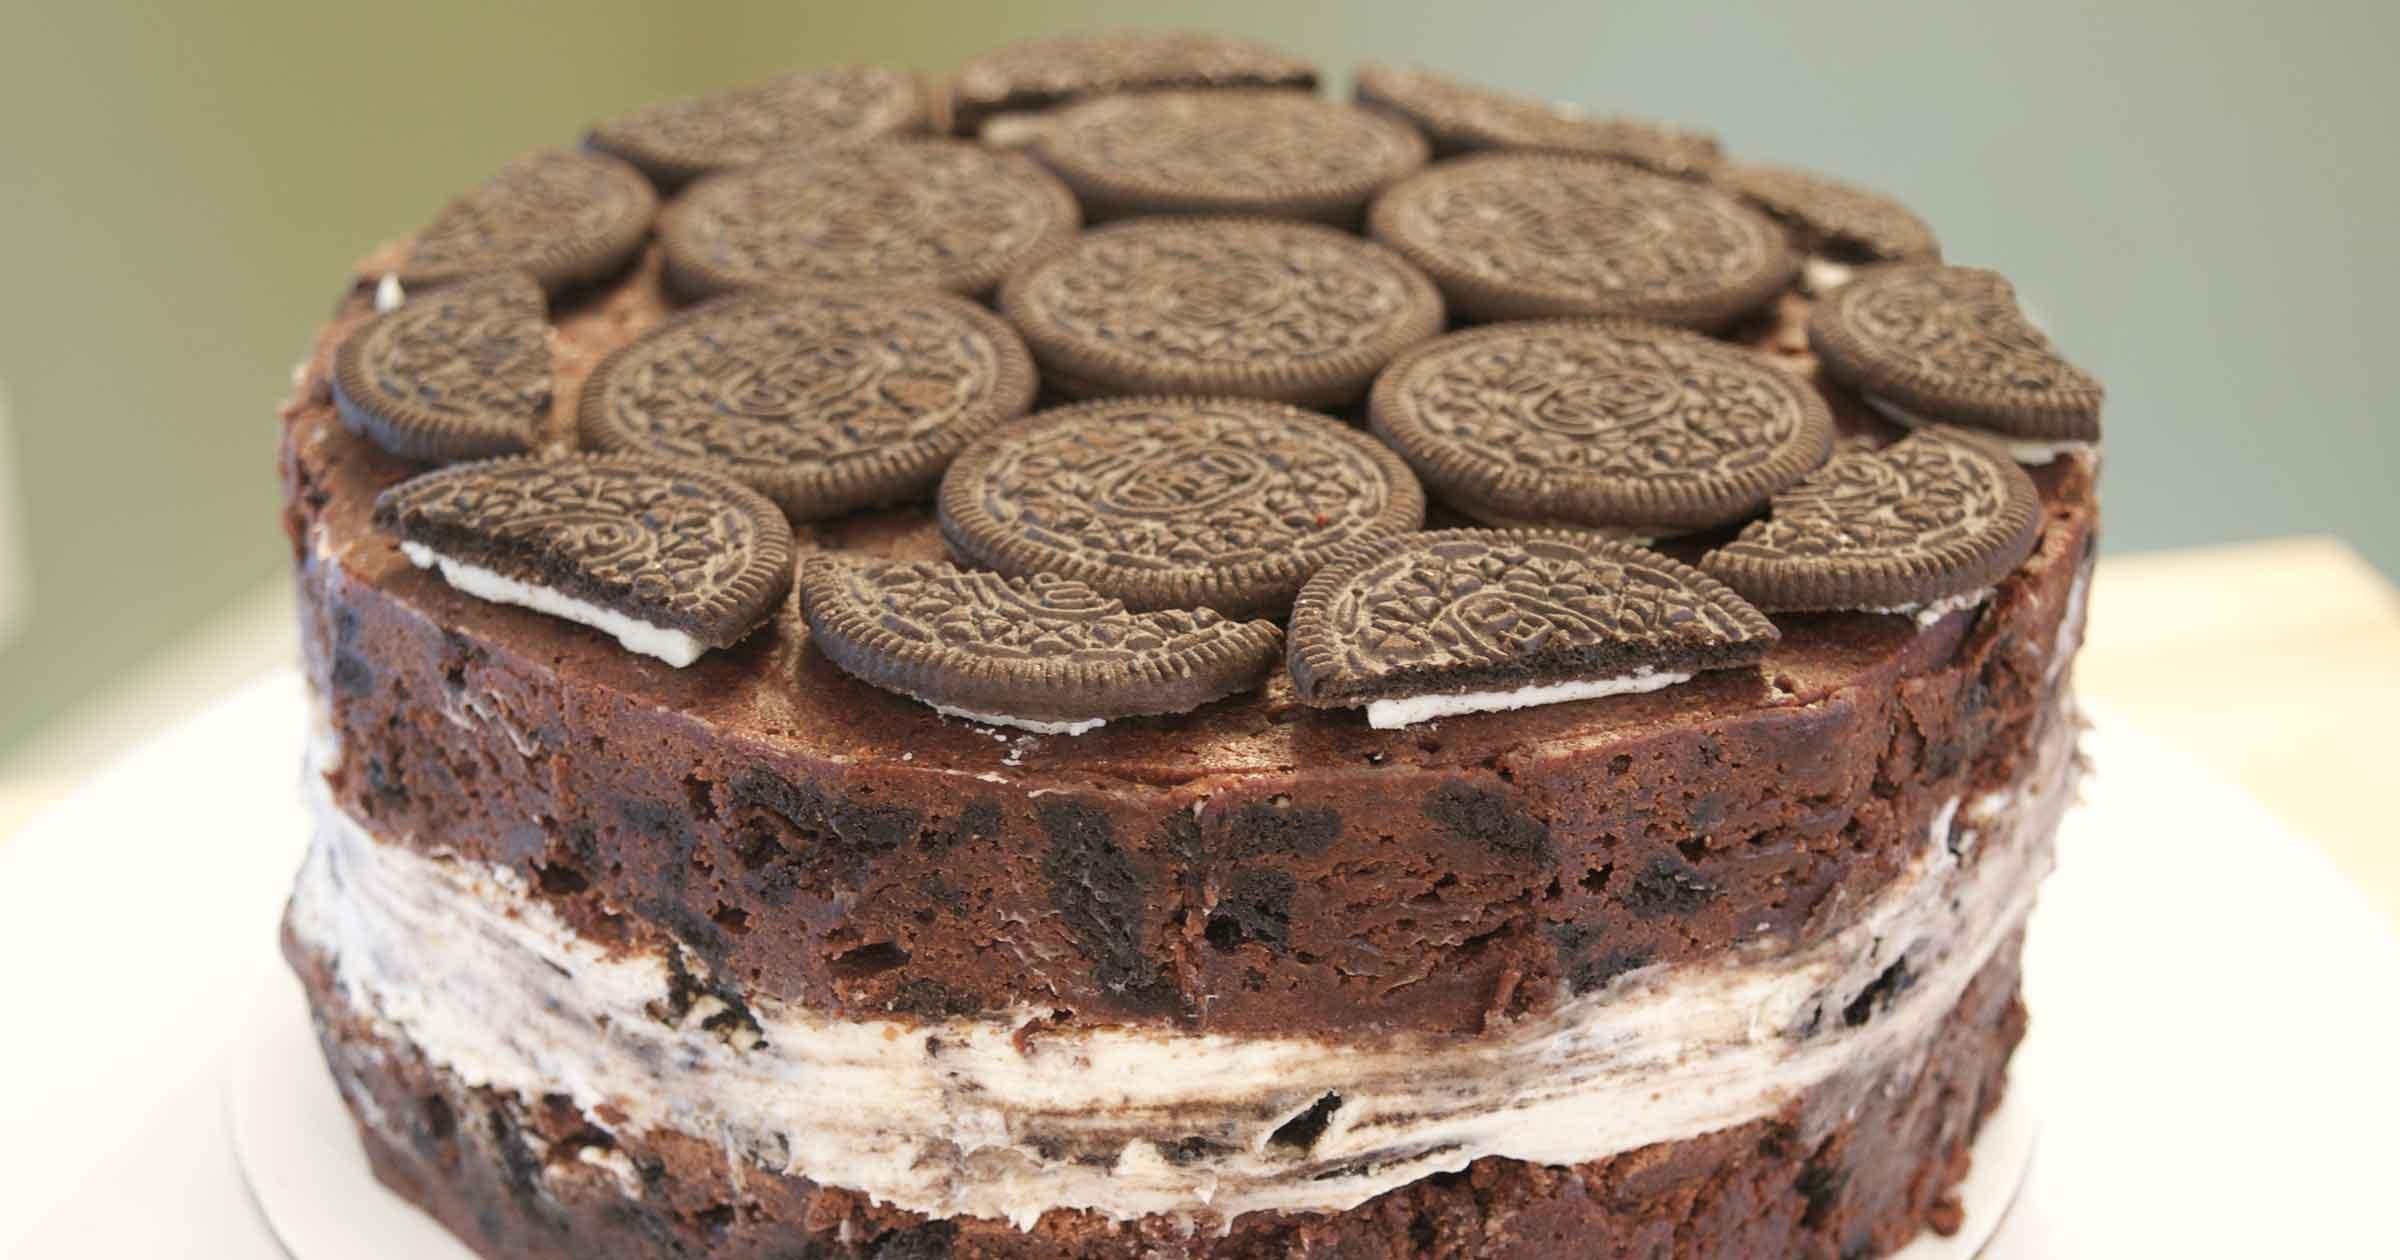 Top of the cake, covered with tightly packed Oreos